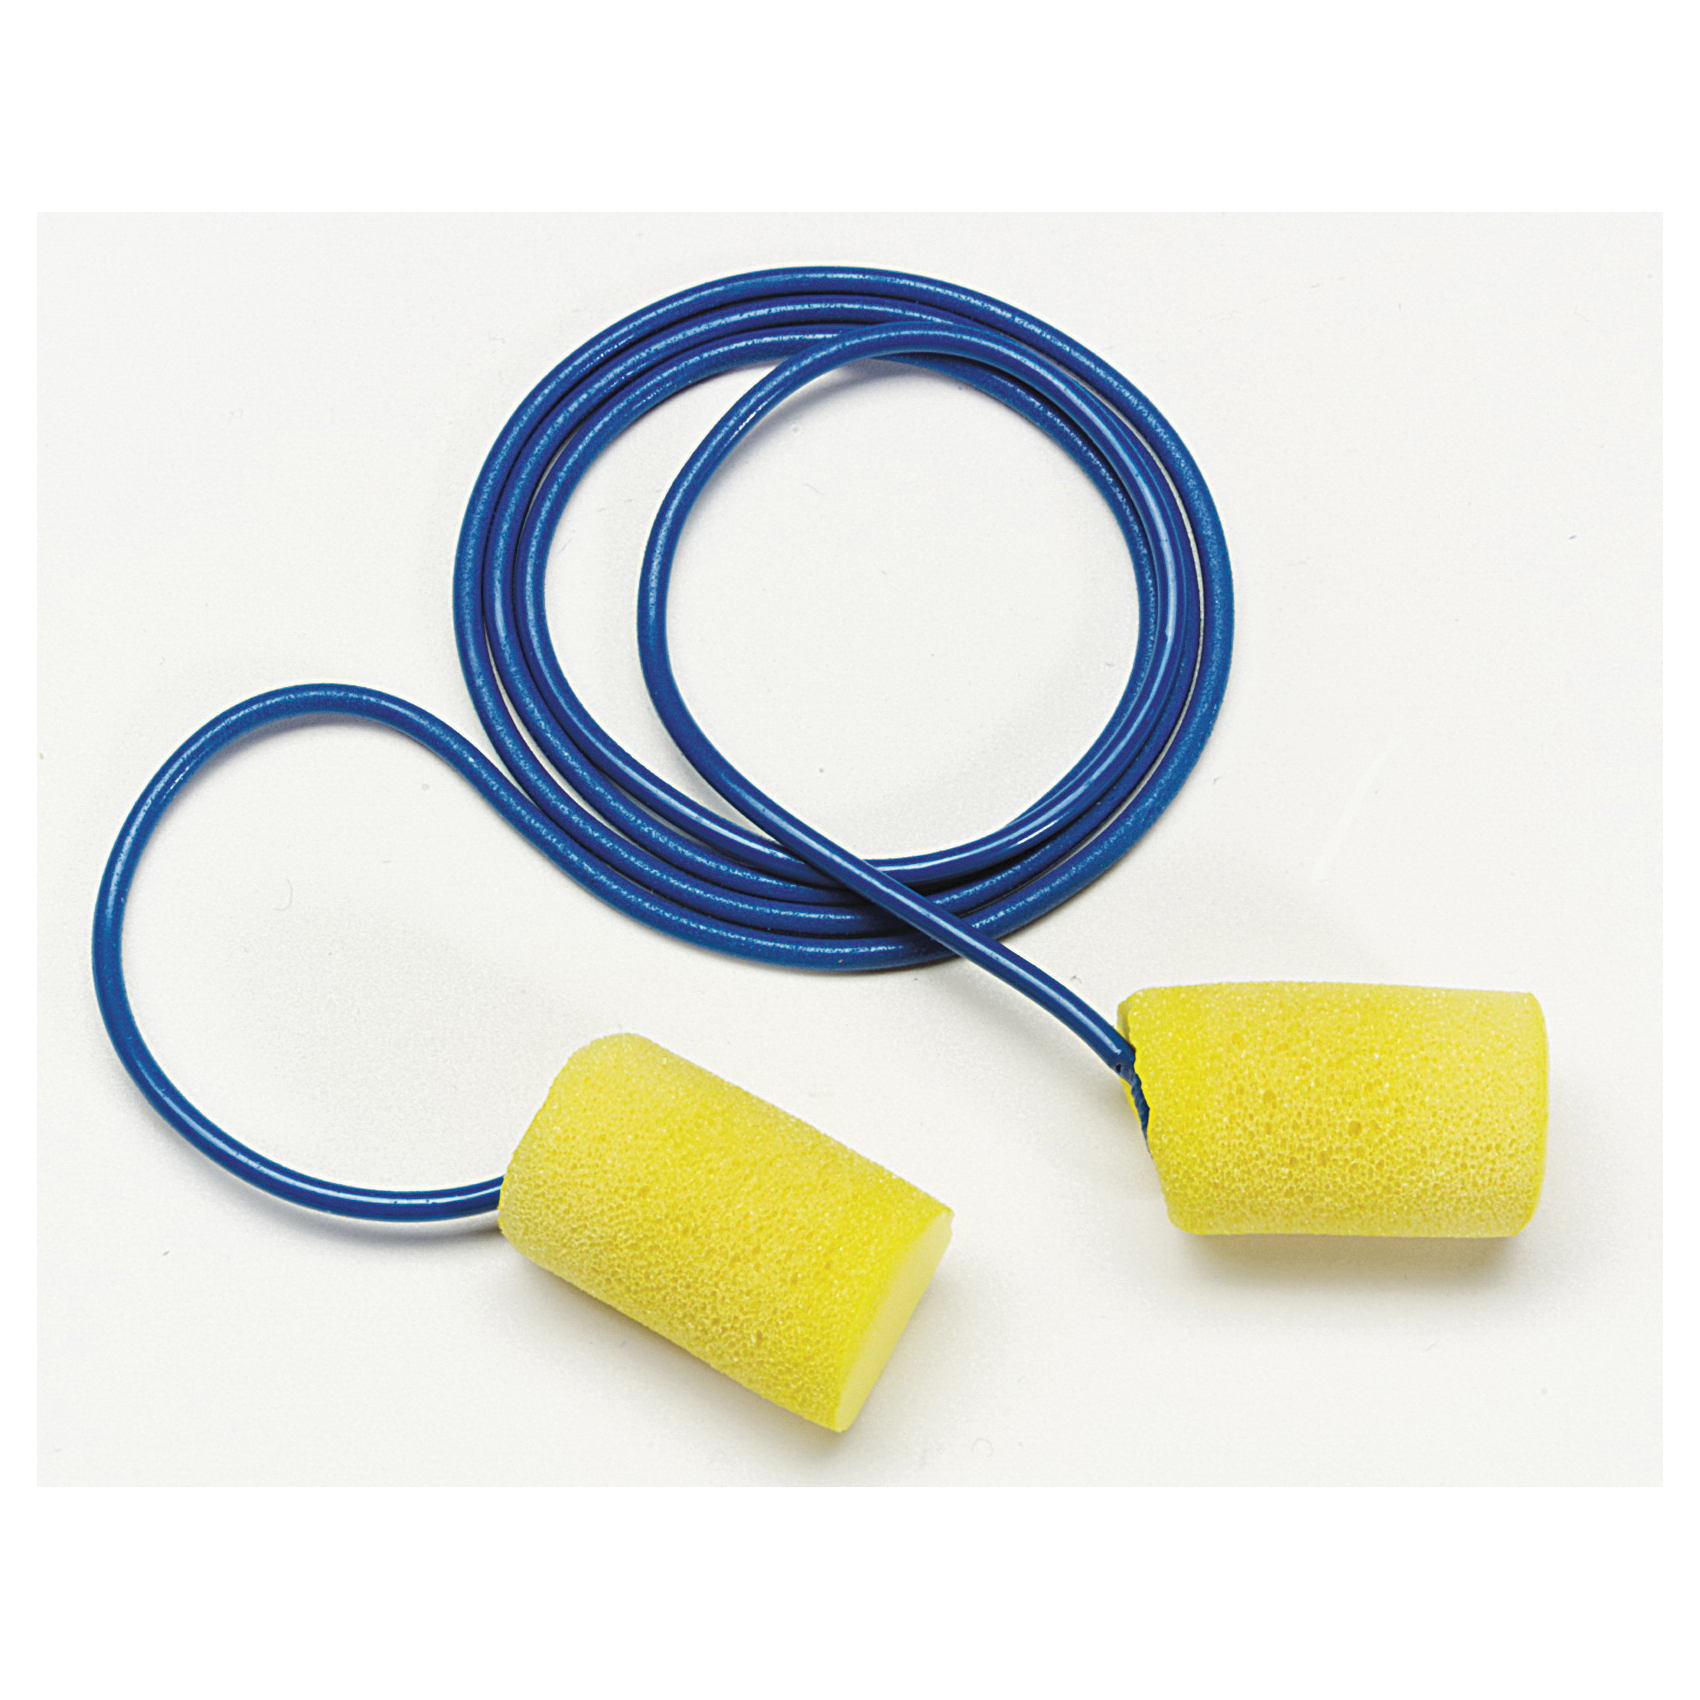 E-A-R™ Classic™ 080529-11023 311-1105 Earplugs, 33 dB Noise Reduction, Cylindrical Shape, CSA Class AL, Disposable, Corded Design